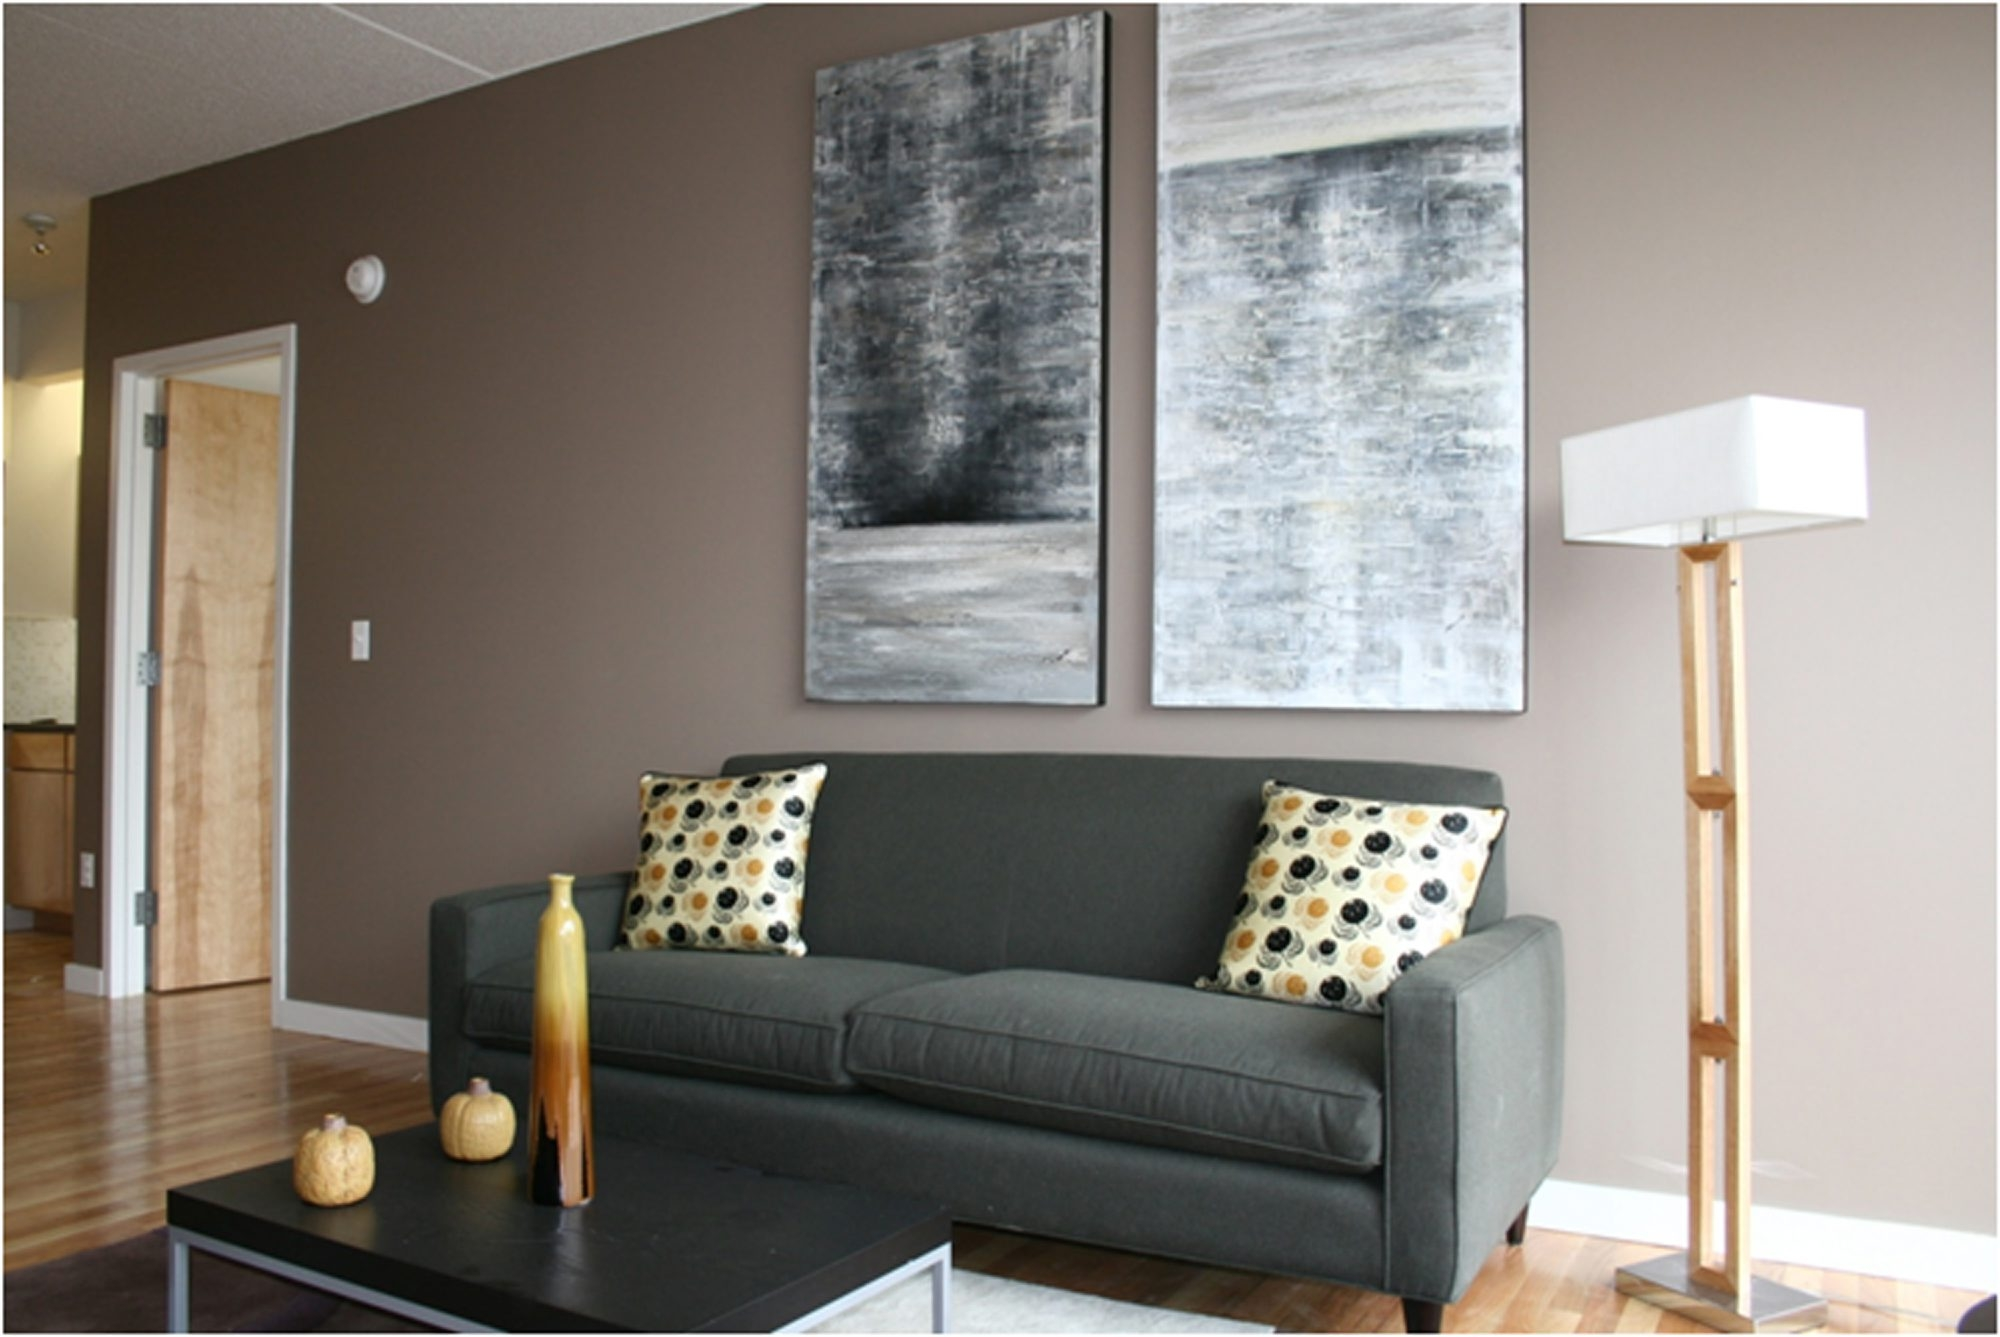 Paint is an easy way to update your room, even if you choose to add color to just one accent wall to save money.